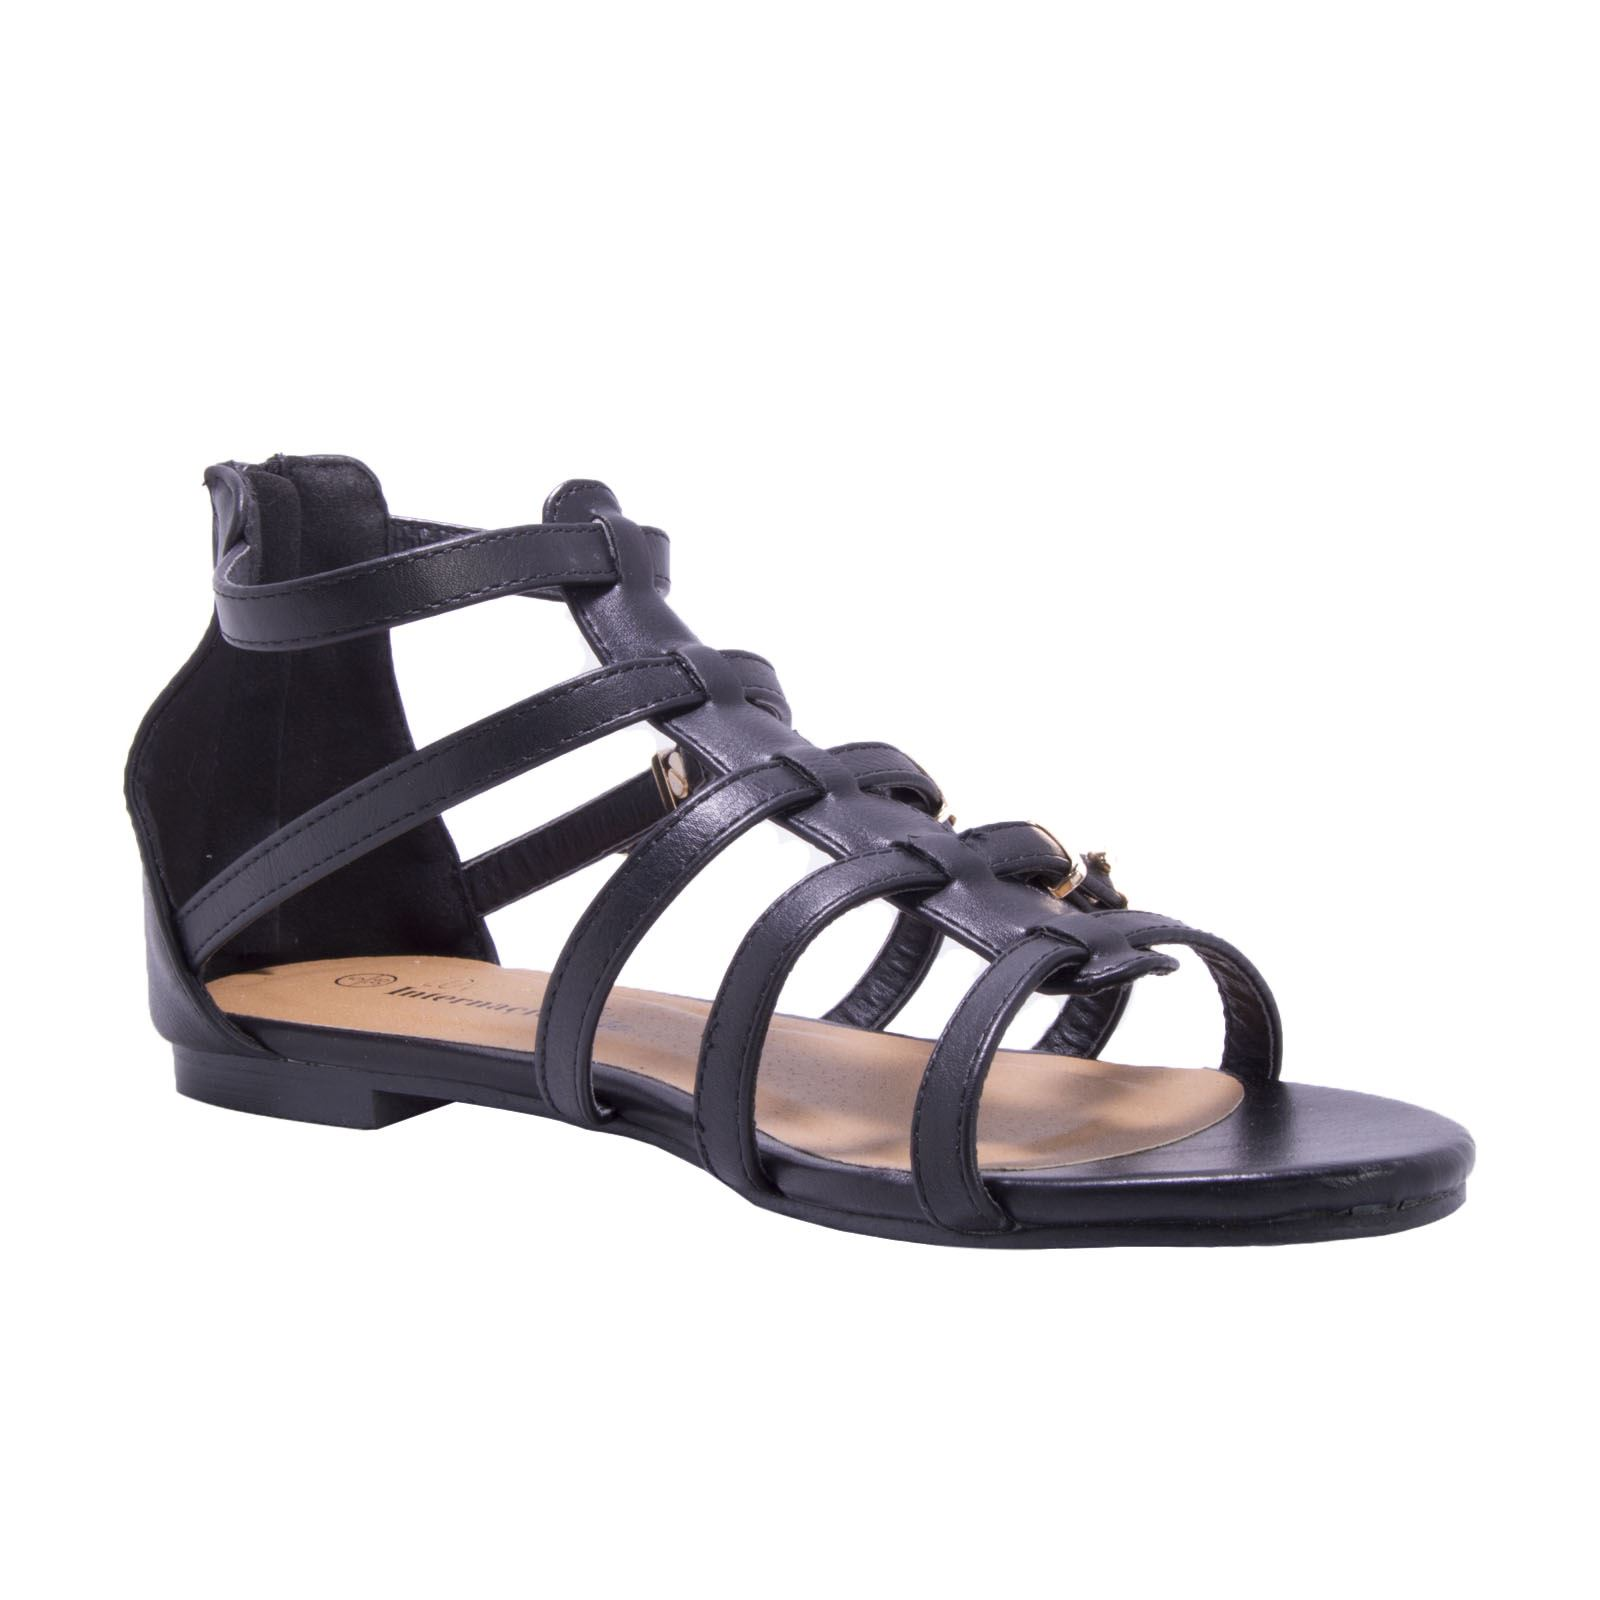 gladiator beach summer itm stud ladies womens shoes flat strappy sandals zip black